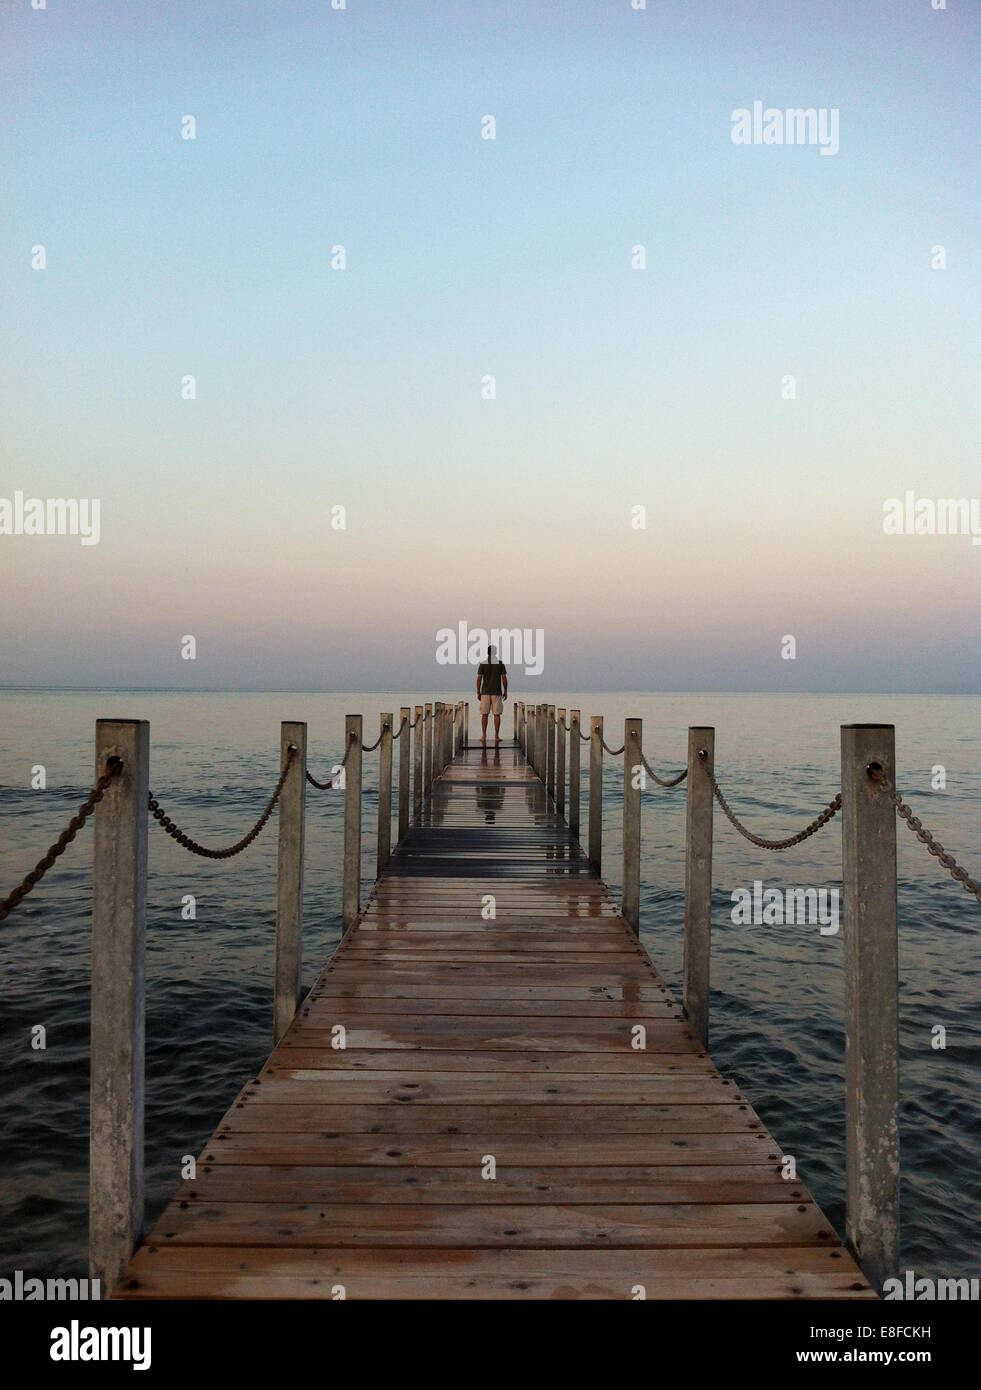 Man standing at the end of pier, Attica Periphery, Greece - Stock Image